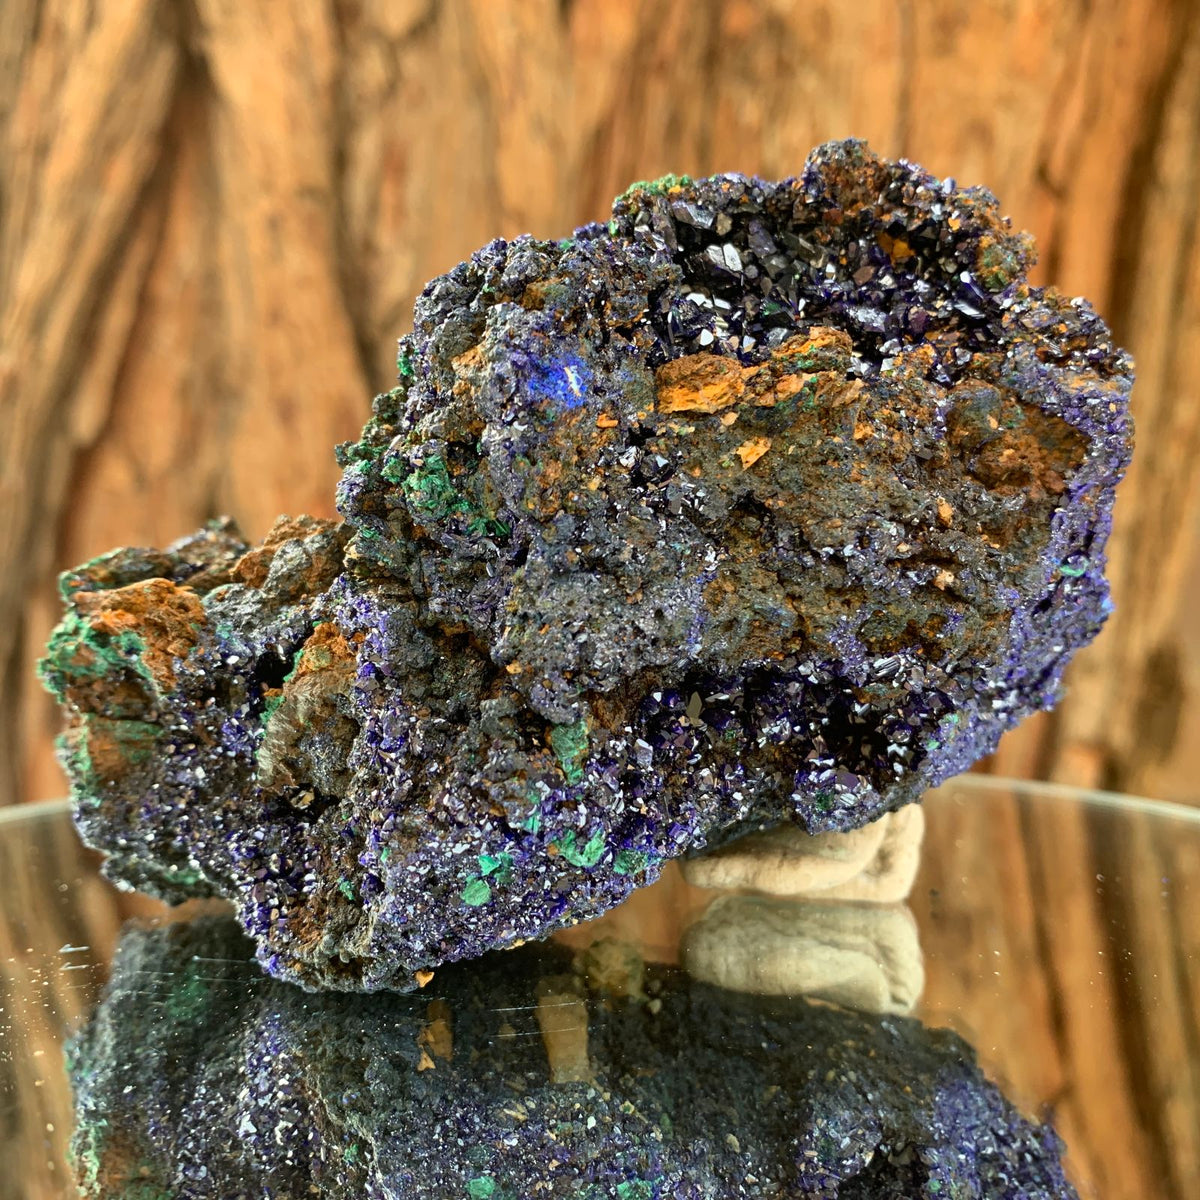 12.3cm 456g Azurite with Malachite from Sepon Mines, Laos